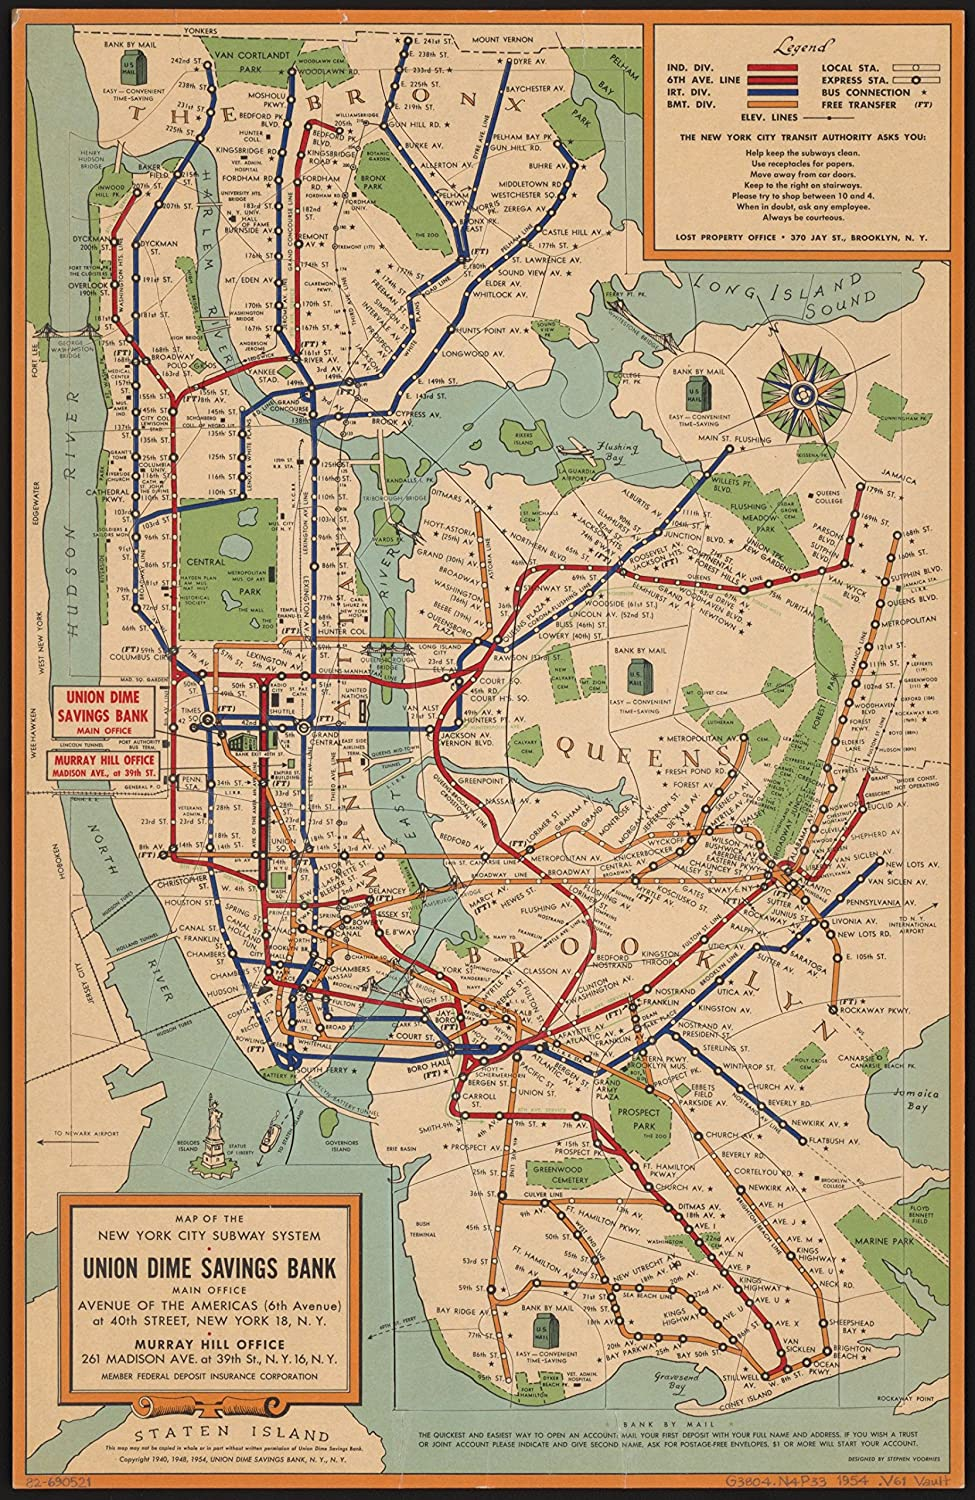 8 x 10 Reprinted Old Vintage Antique Map of: c 1954 Map of The New York  City Subway System m1753